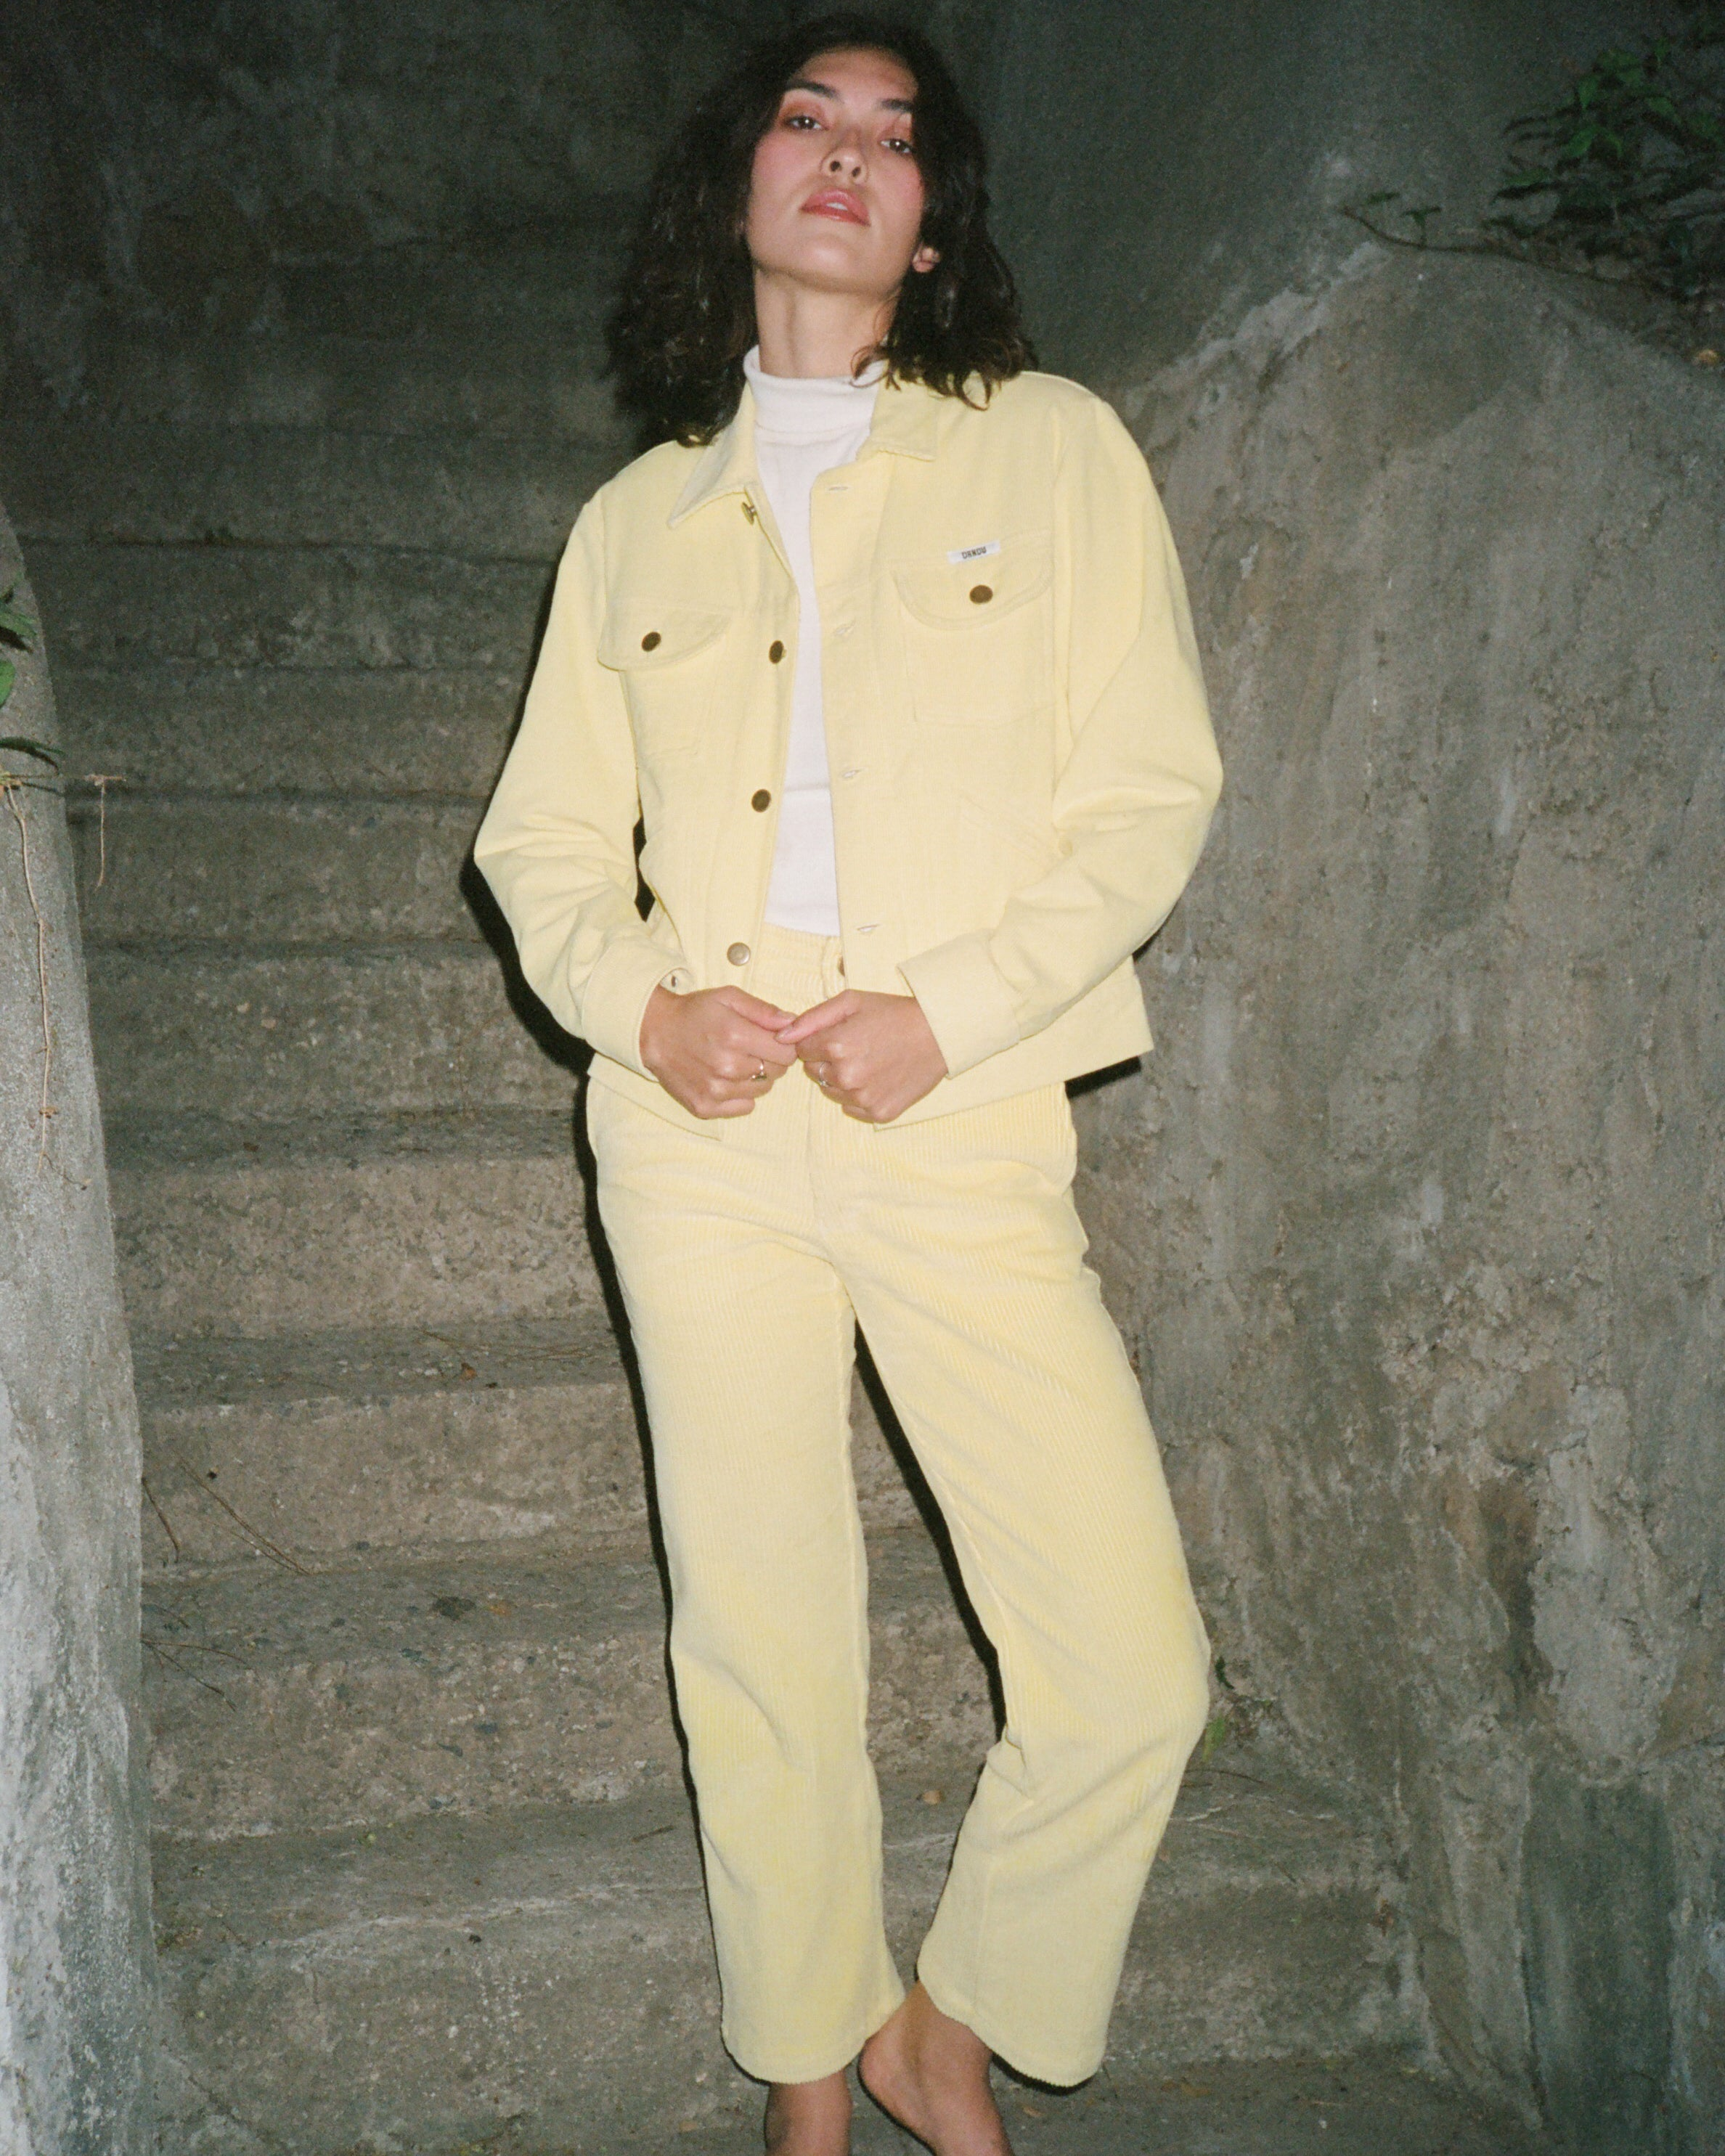 The Dandy Suit in Mellow Yellow